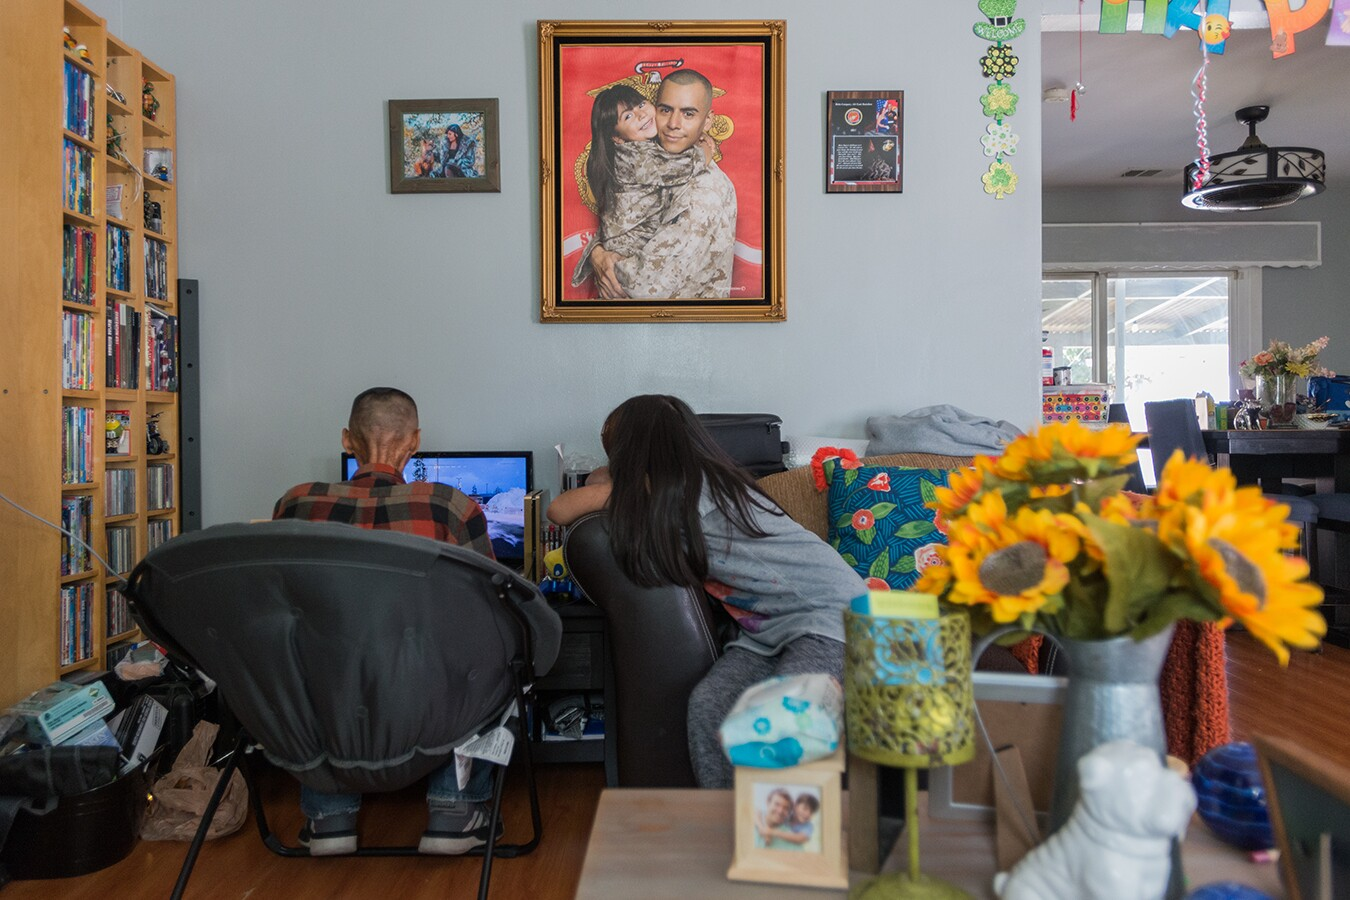 Rhianna watches her dad play a video game on a computer. Their backs are turned to the camera. In frame, you can see their home which is filled with sunflowers in a vase, photos of Rhianna and her dad, a shelf full of DVDs and vibrant throw pillows.